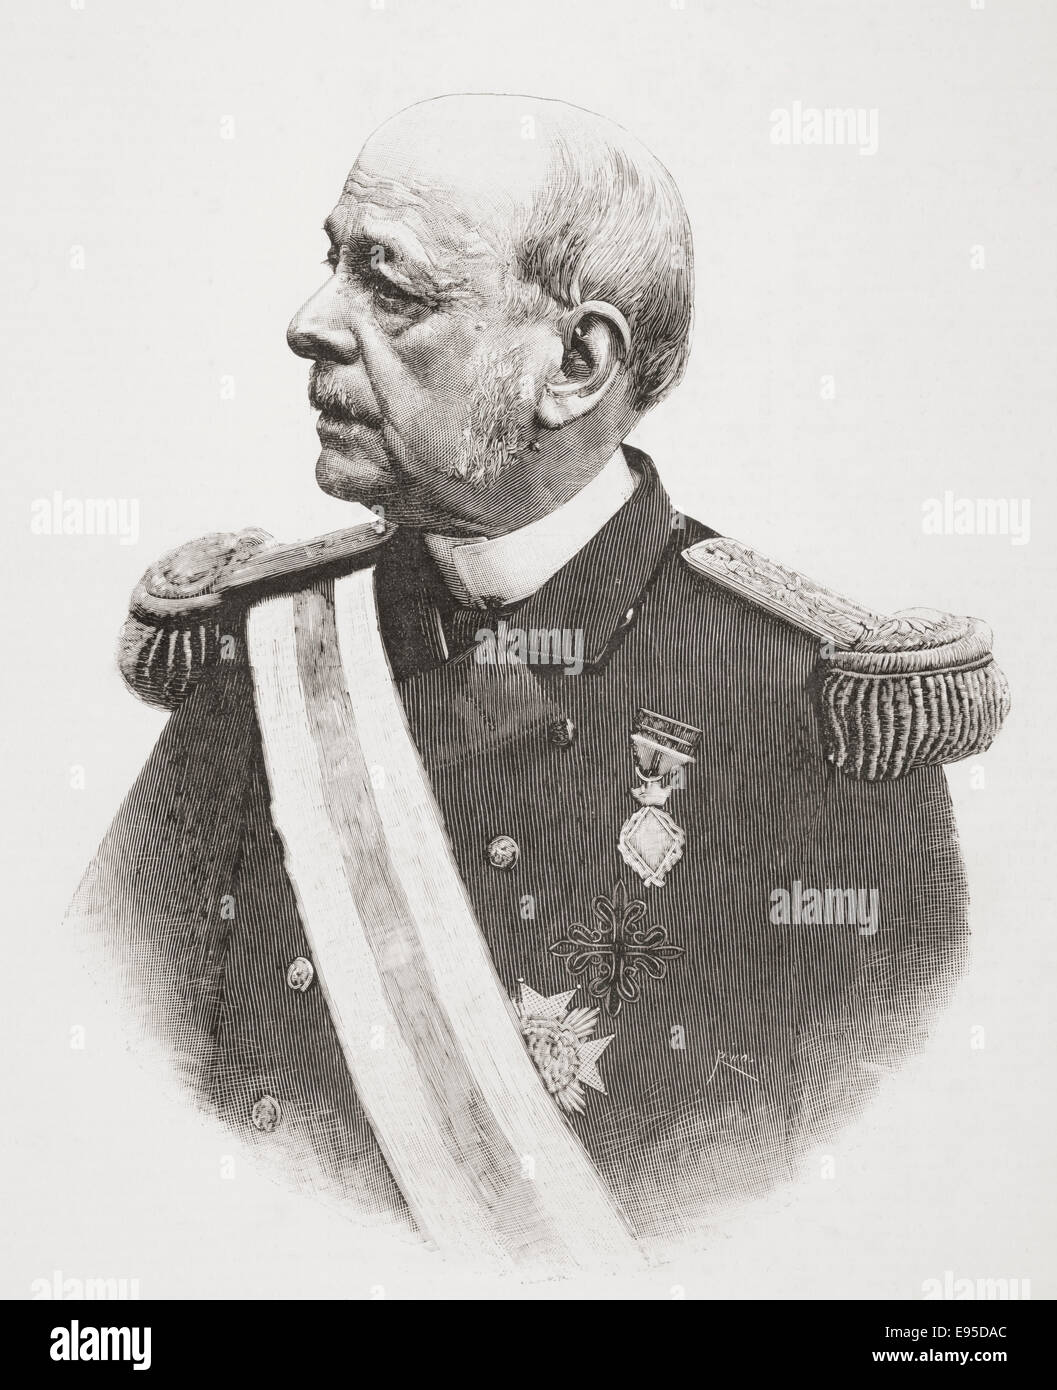 José María Beránger y Ruiz de Apodaca,  1824 – 1907.  Spanish military officer and Minister of the - Stock Image